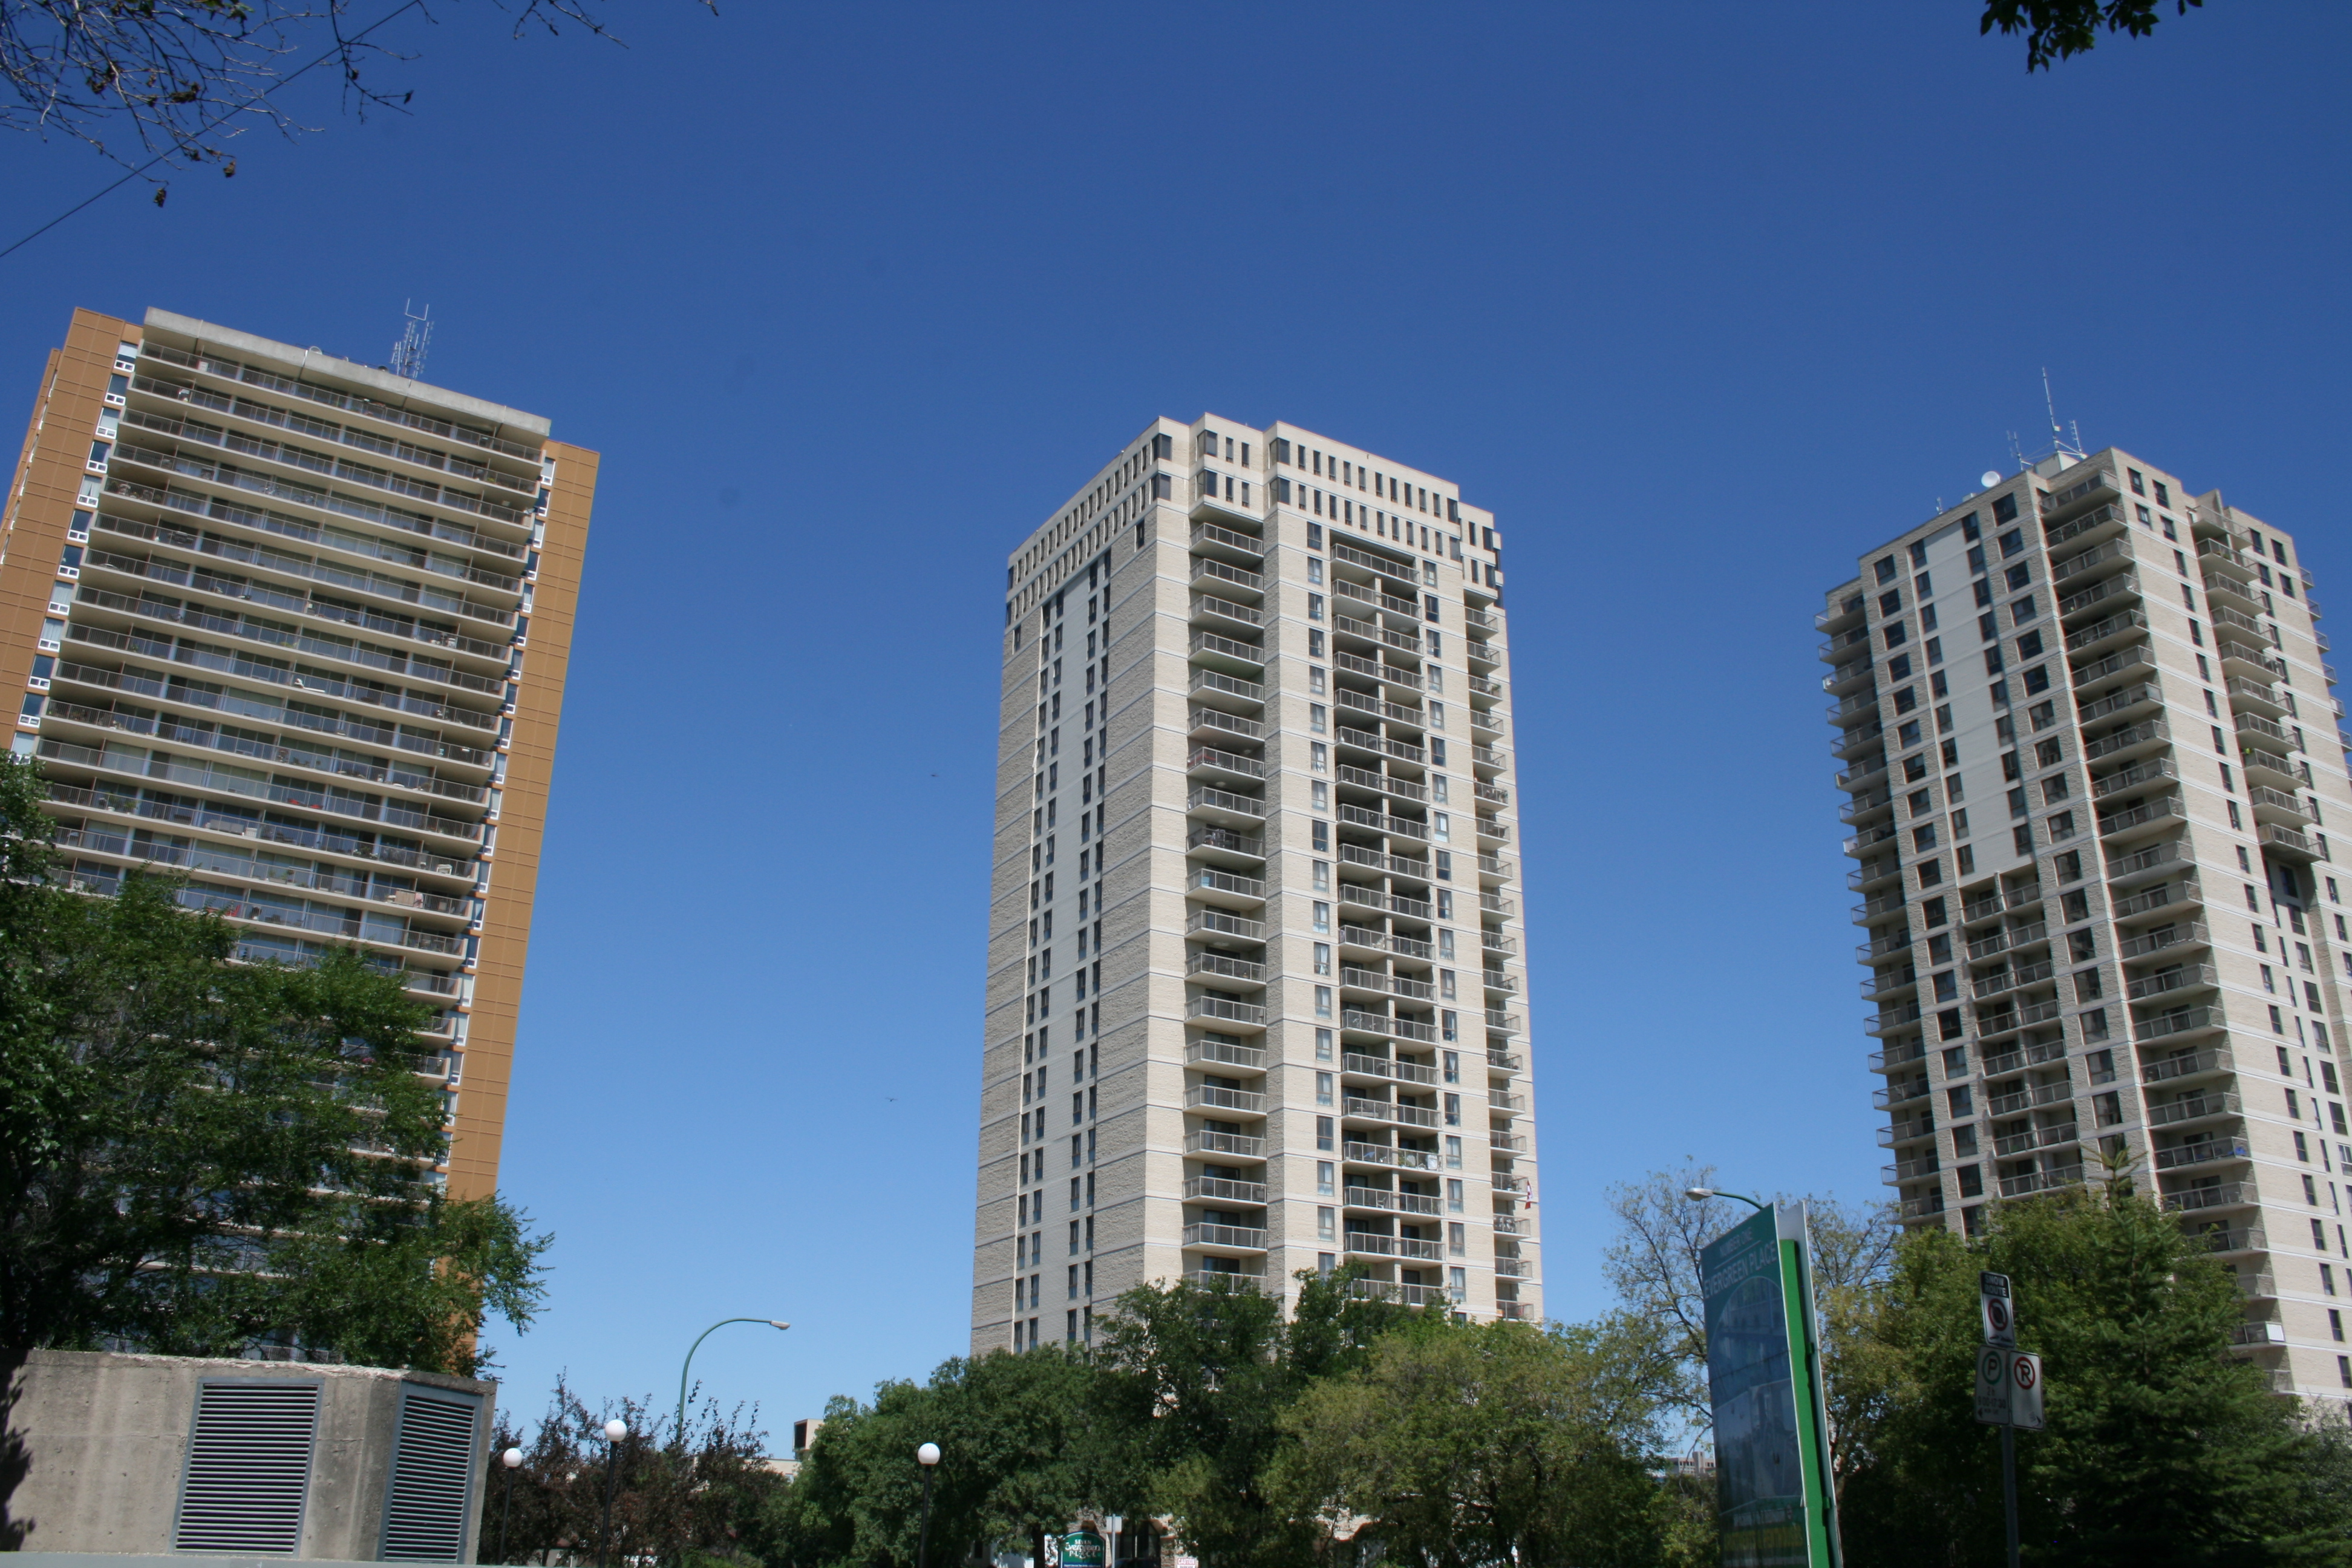 1 Evergreen Place